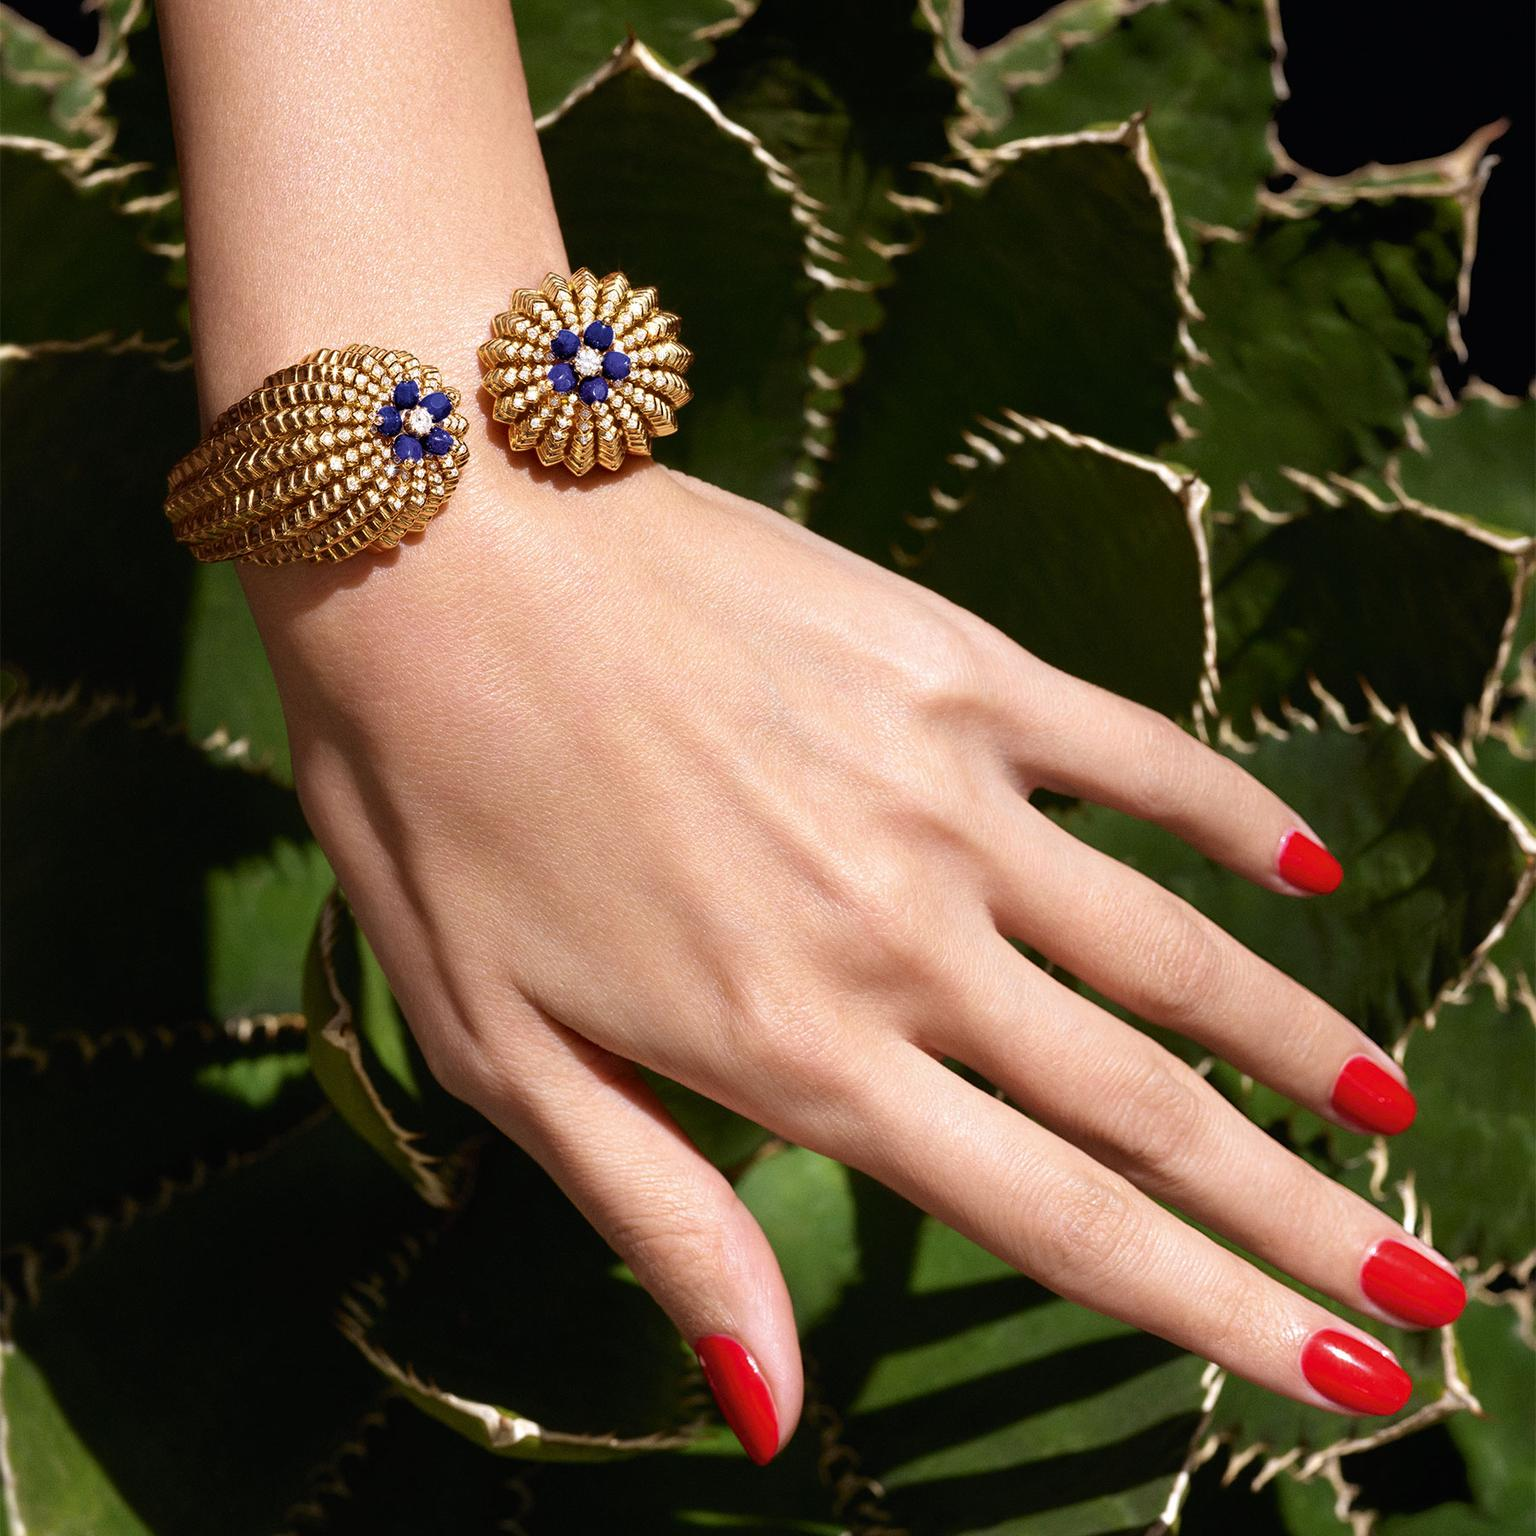 Cartier de Cactus bracelet in yellow gold, lapis lazuli and diamonds